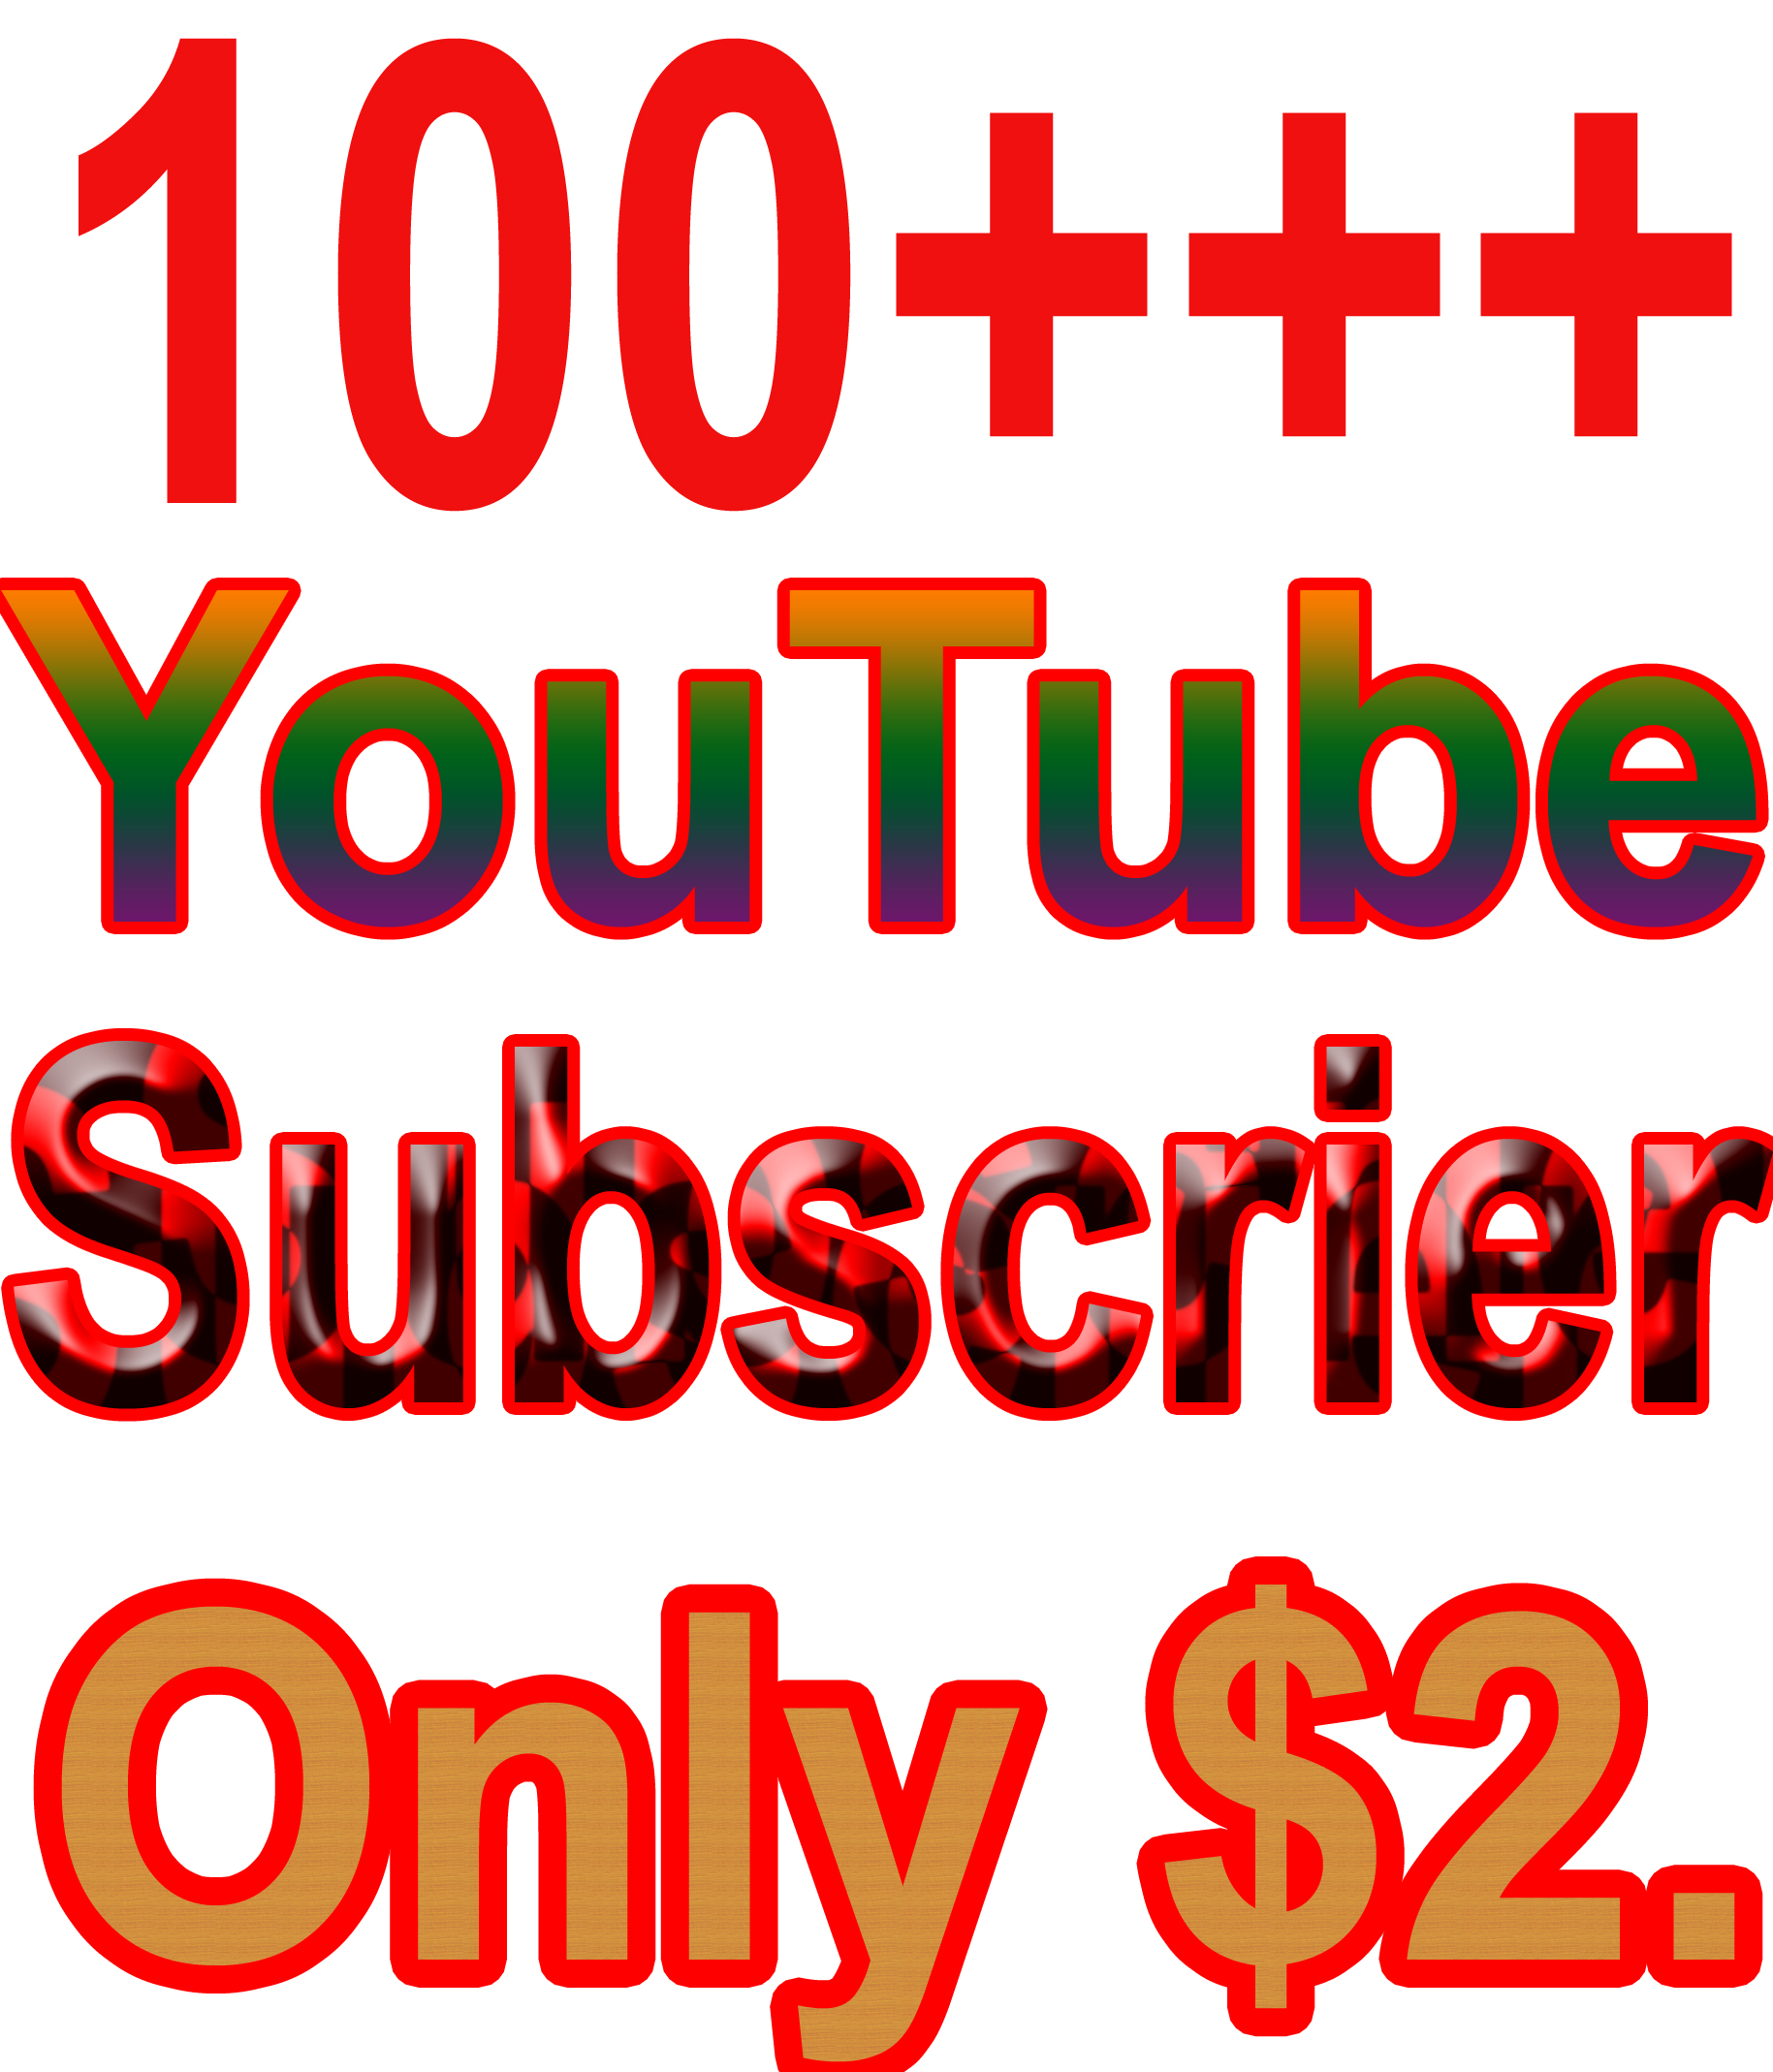 Add 100+++ You Tube Subscriber